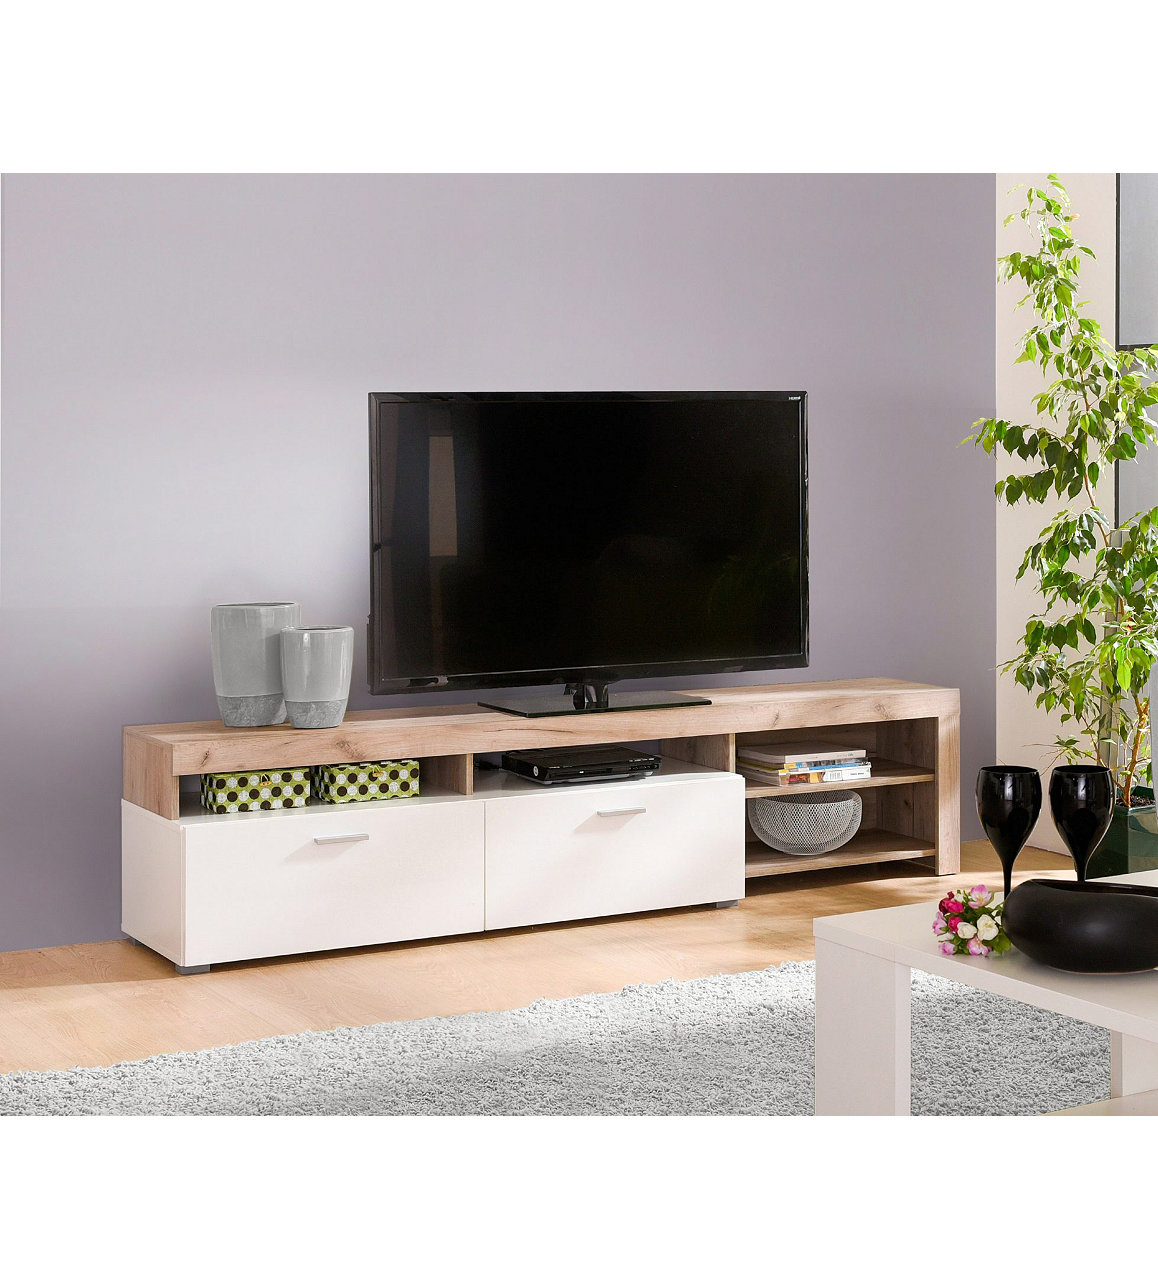 meuble tv bois et blanc id es de d coration int rieure. Black Bedroom Furniture Sets. Home Design Ideas